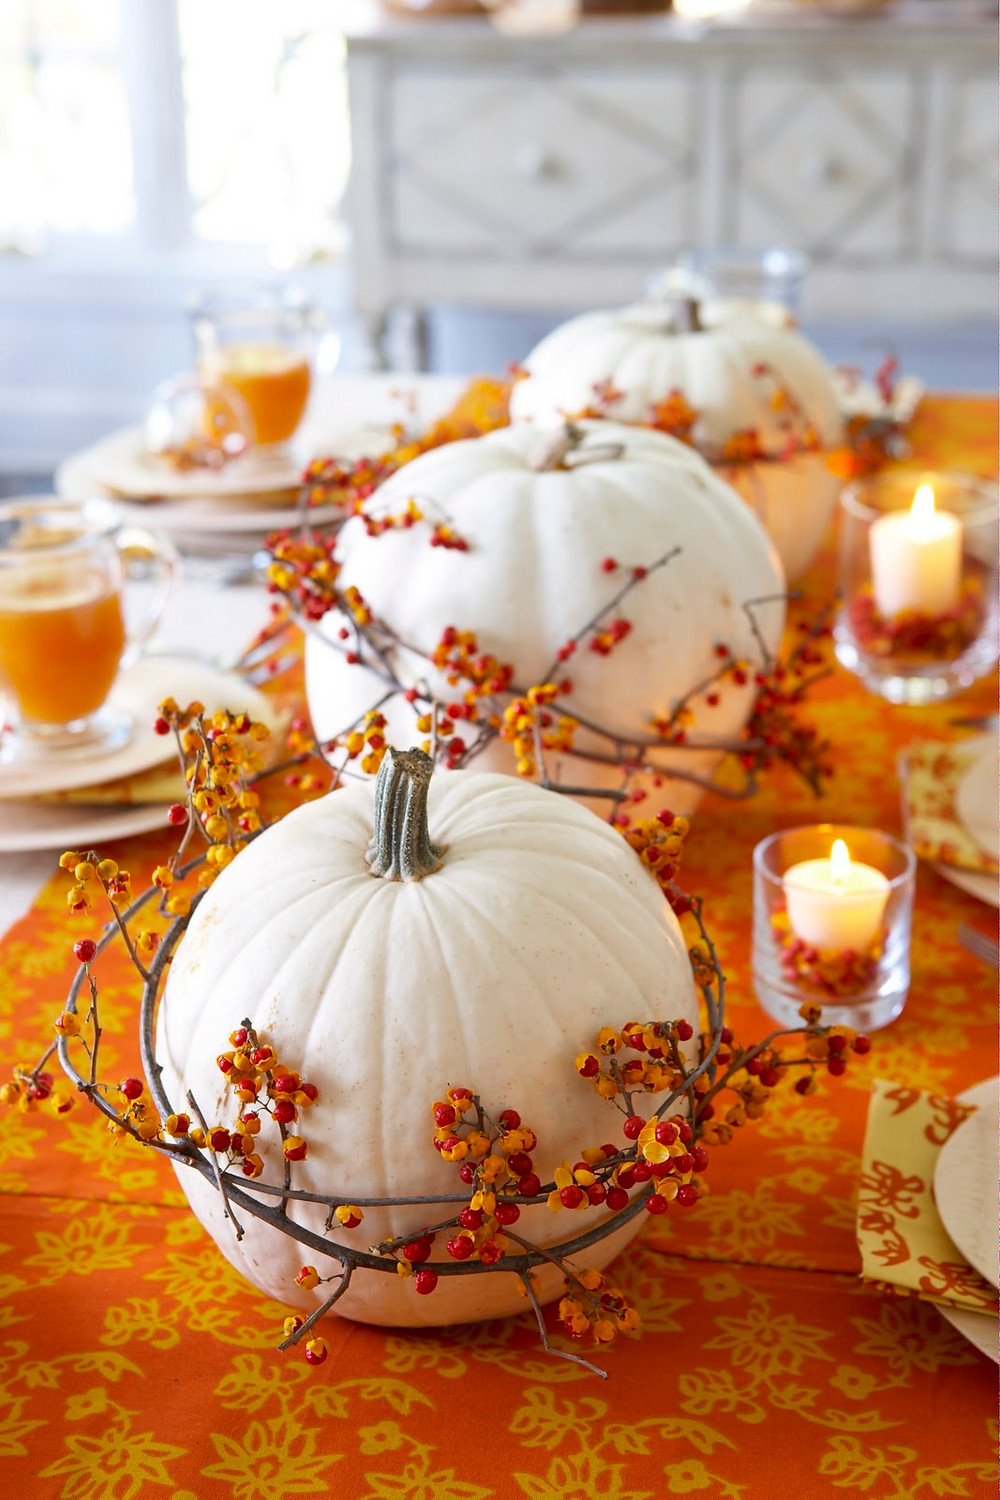 interior-exterior-cool-fall-home-decorating-idea-for-dining-table-with-orange-ta